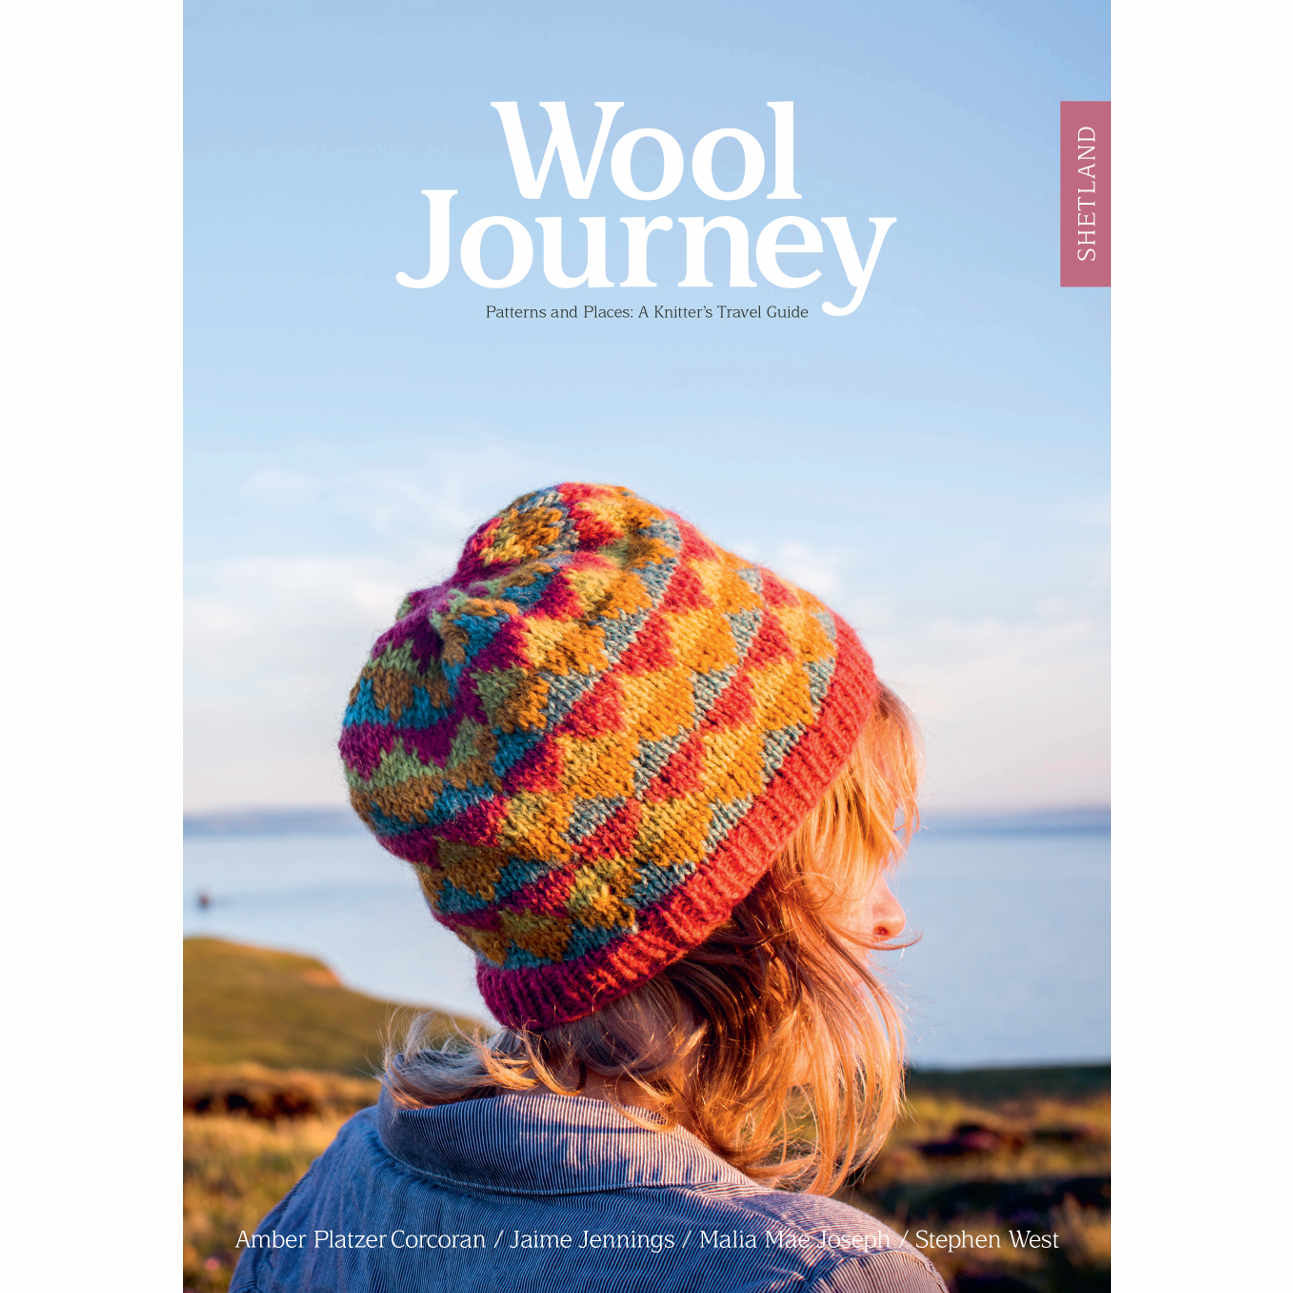 Wool Journey: Shetlands, Patterns, Books, Shetlands,Travel, Knitting